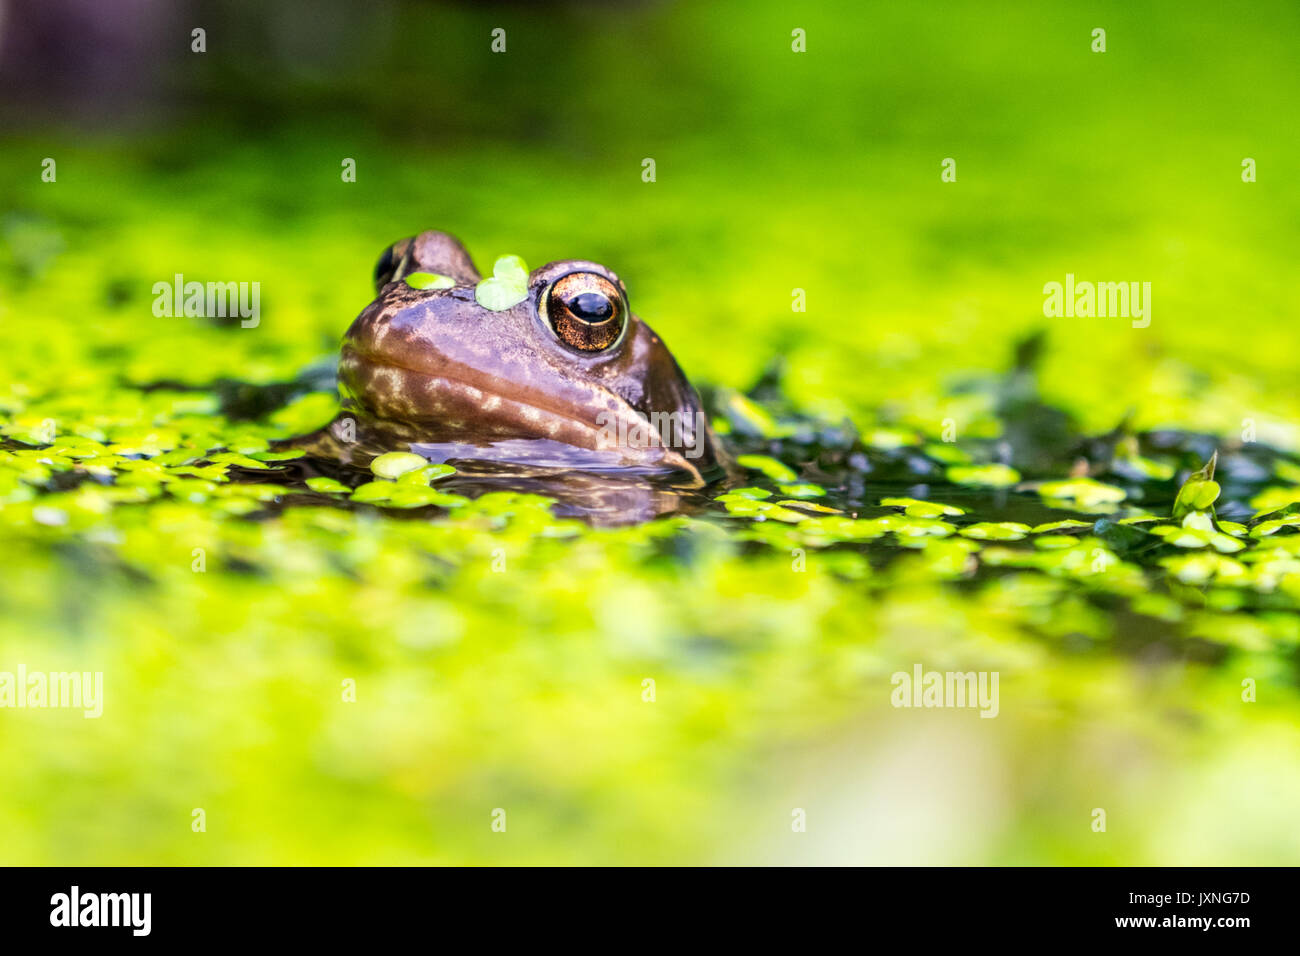 Common Frogs in a British garden pond Stock Photo